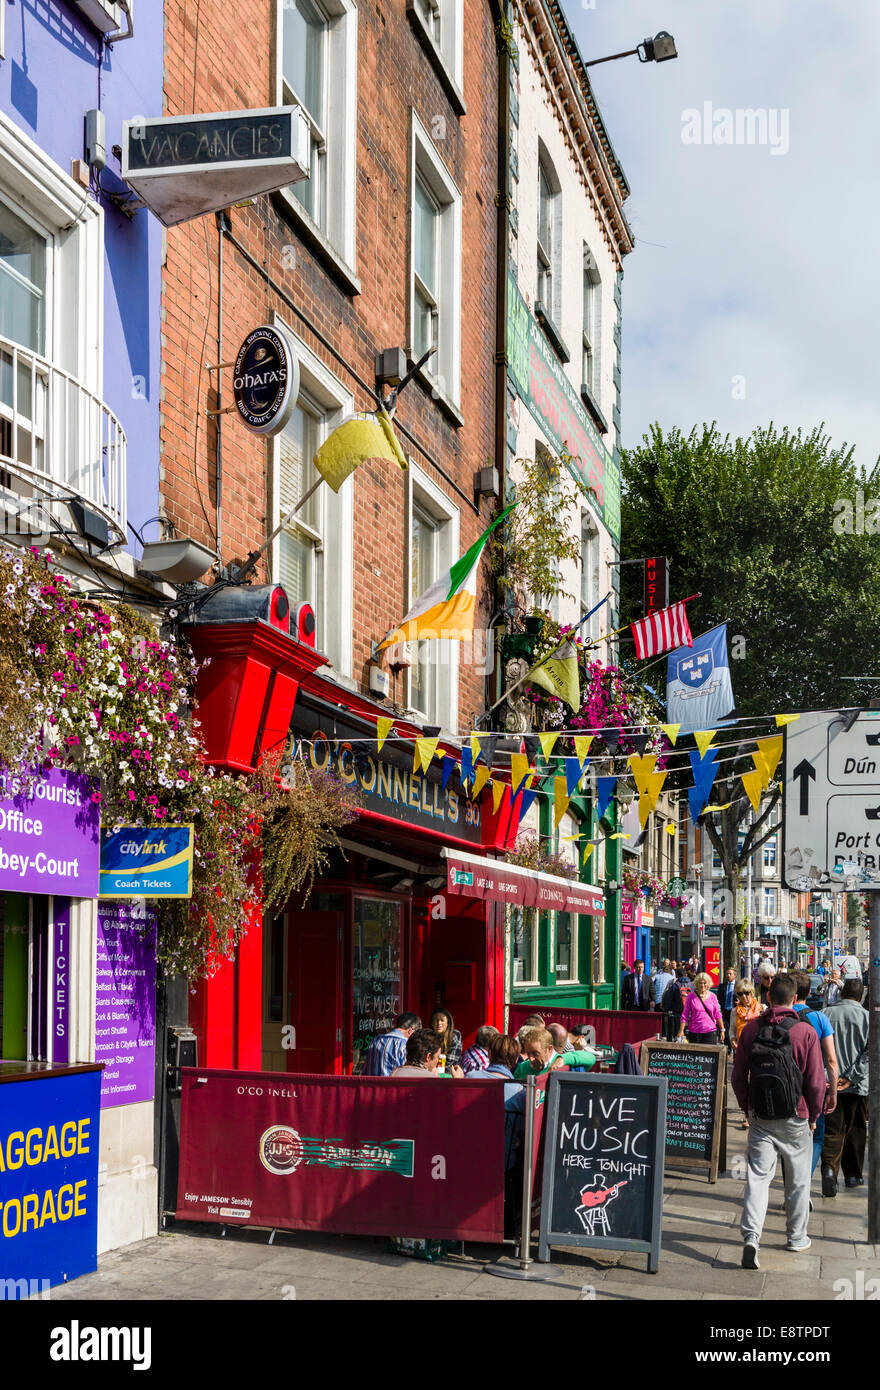 Shops and pubs on Bachelors Walk in the city centre, Dublin City, Republic of Ireland - Stock Image